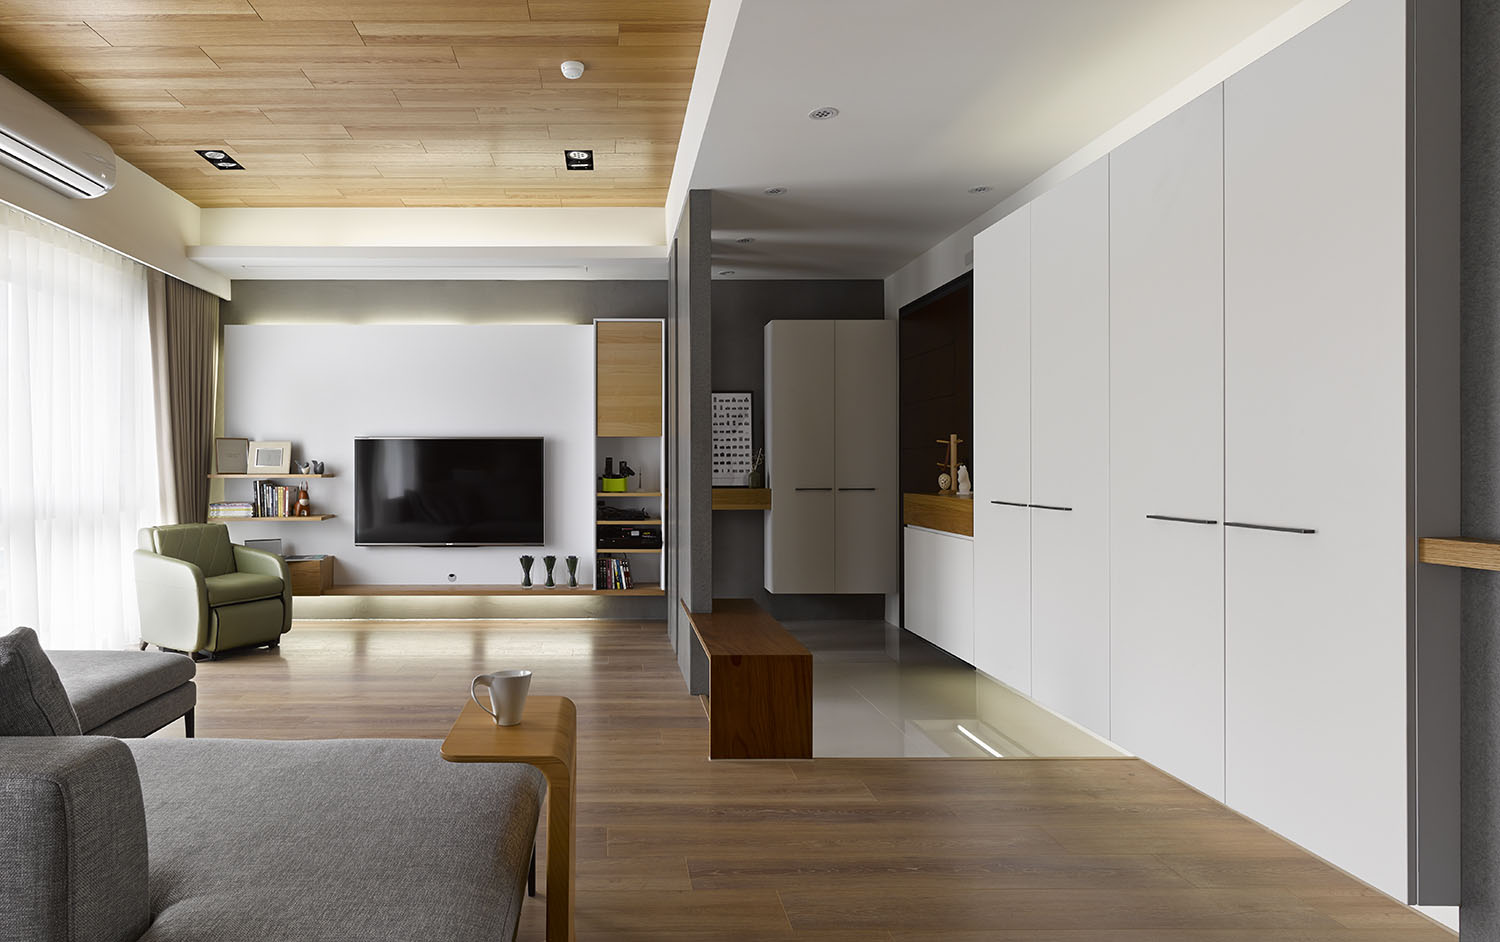 Liu's Warm Wooden Apartment in New Taipei City by HOYA Design-02